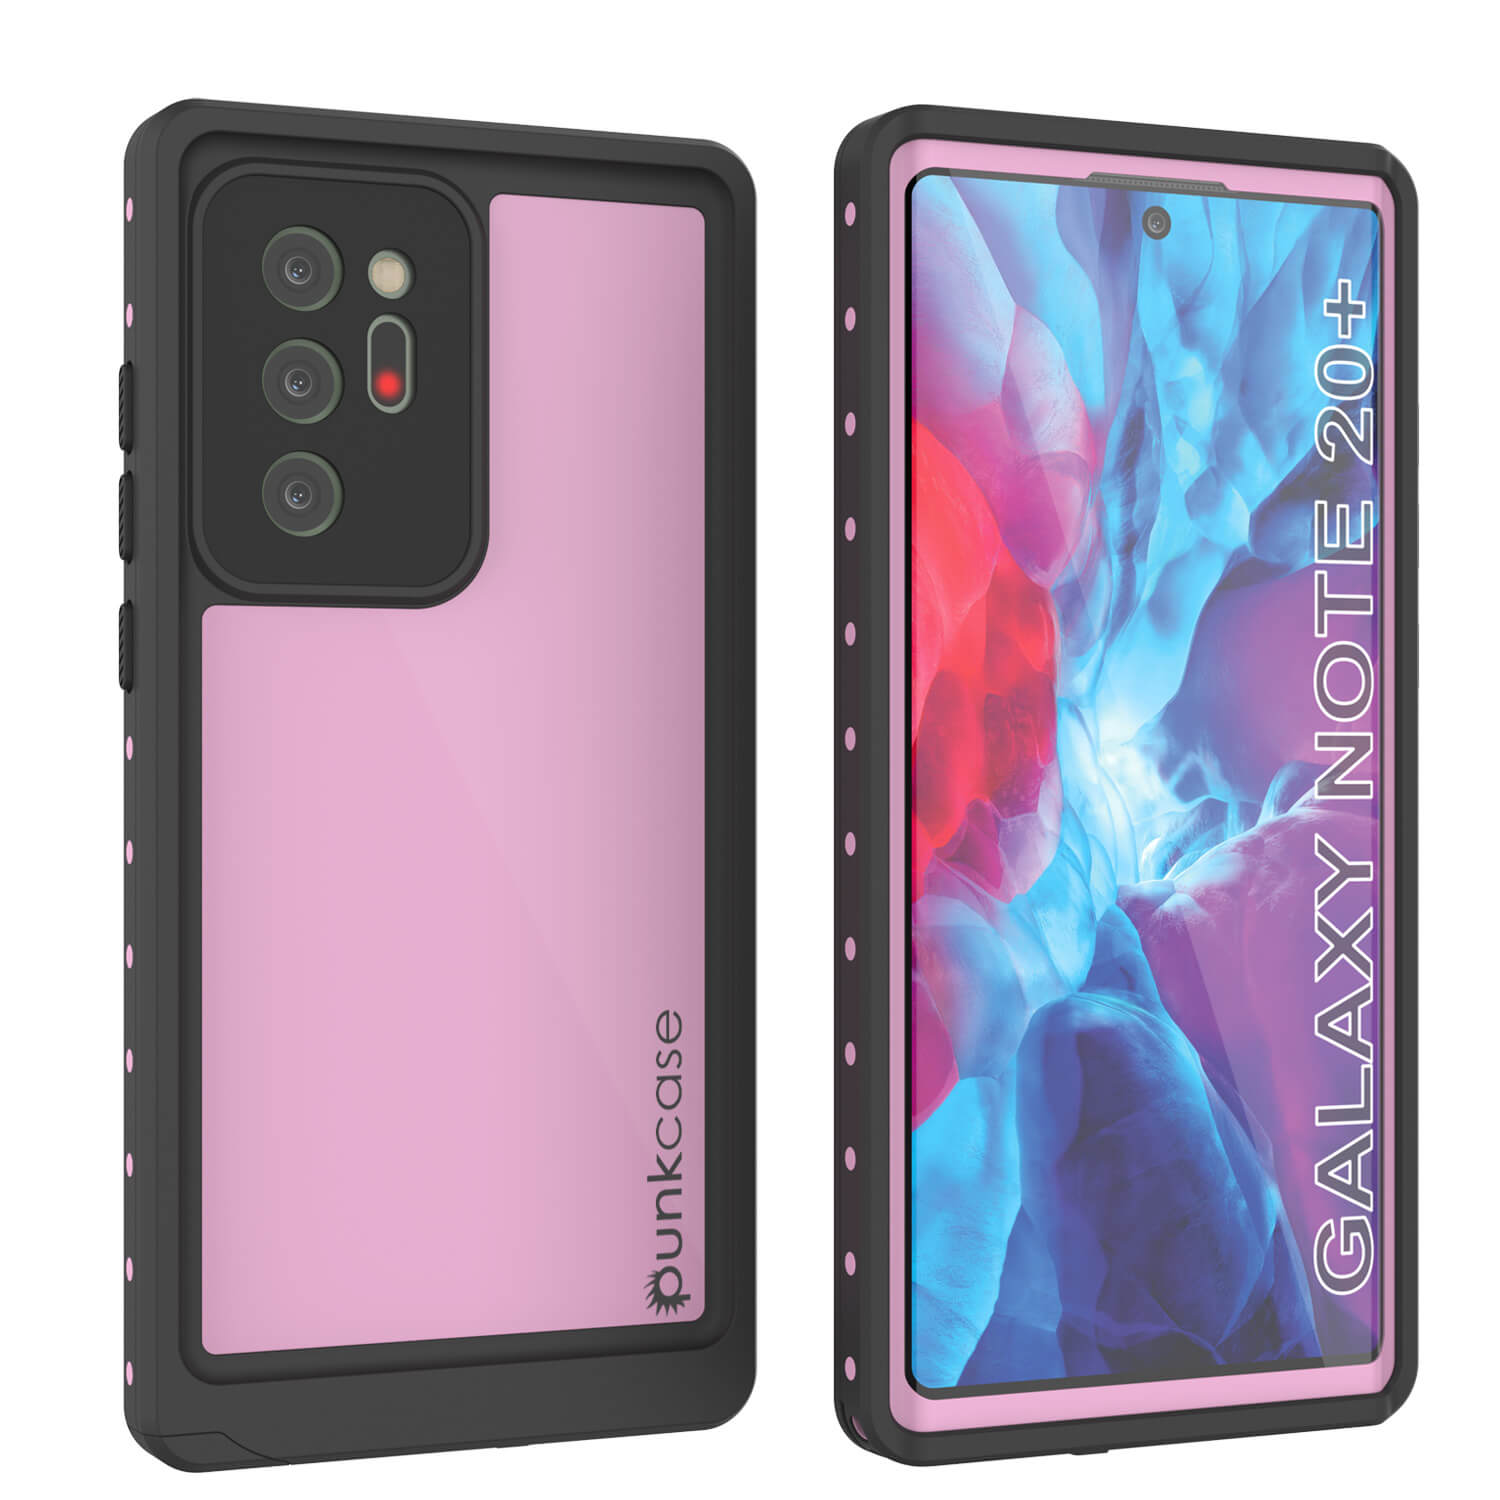 Galaxy Note 20 Ultra Waterproof Case, Punkcase Studstar Pink Thin Armor Cover